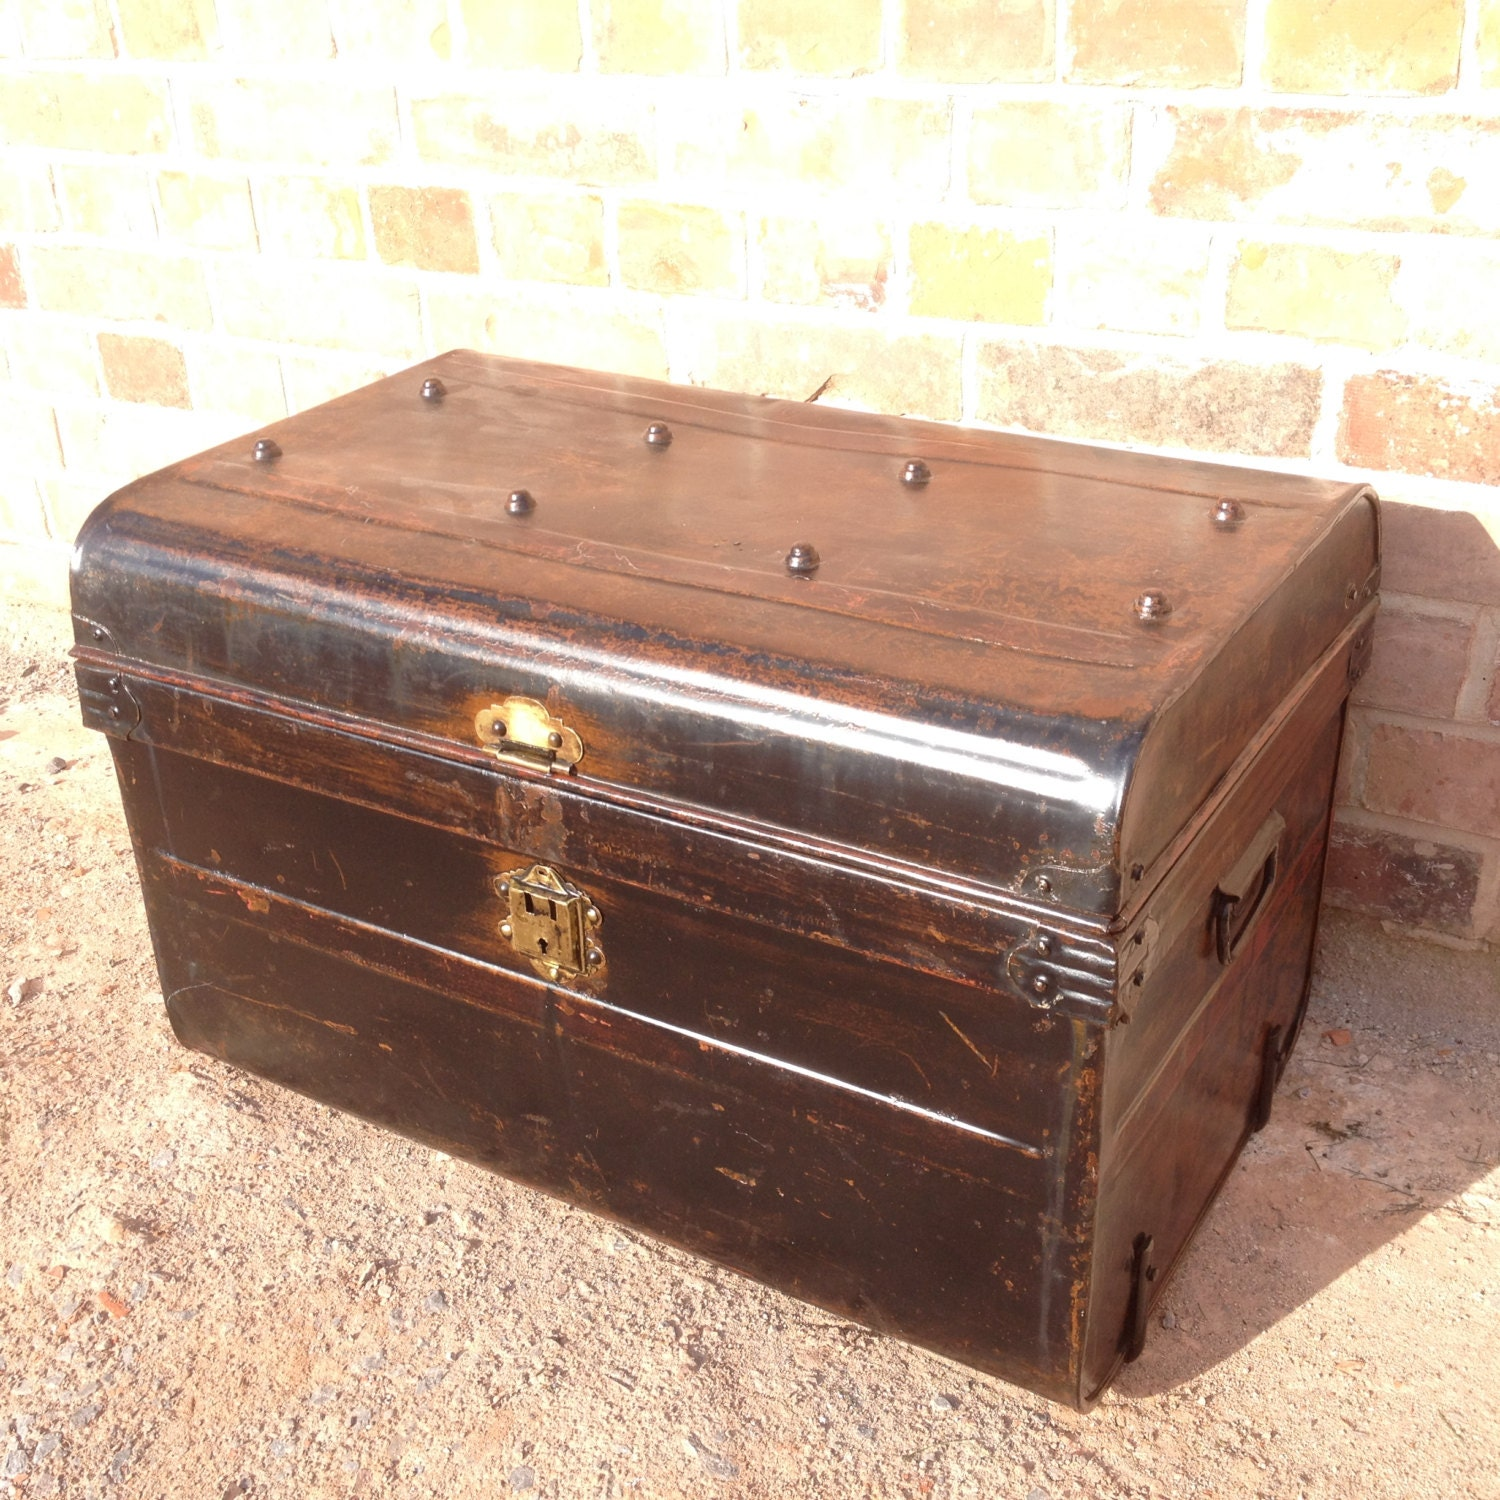 Vintage Metal Black Brown Steamer Trunk Travel Trunk Storage Trunk Coffee Table Antique Haute